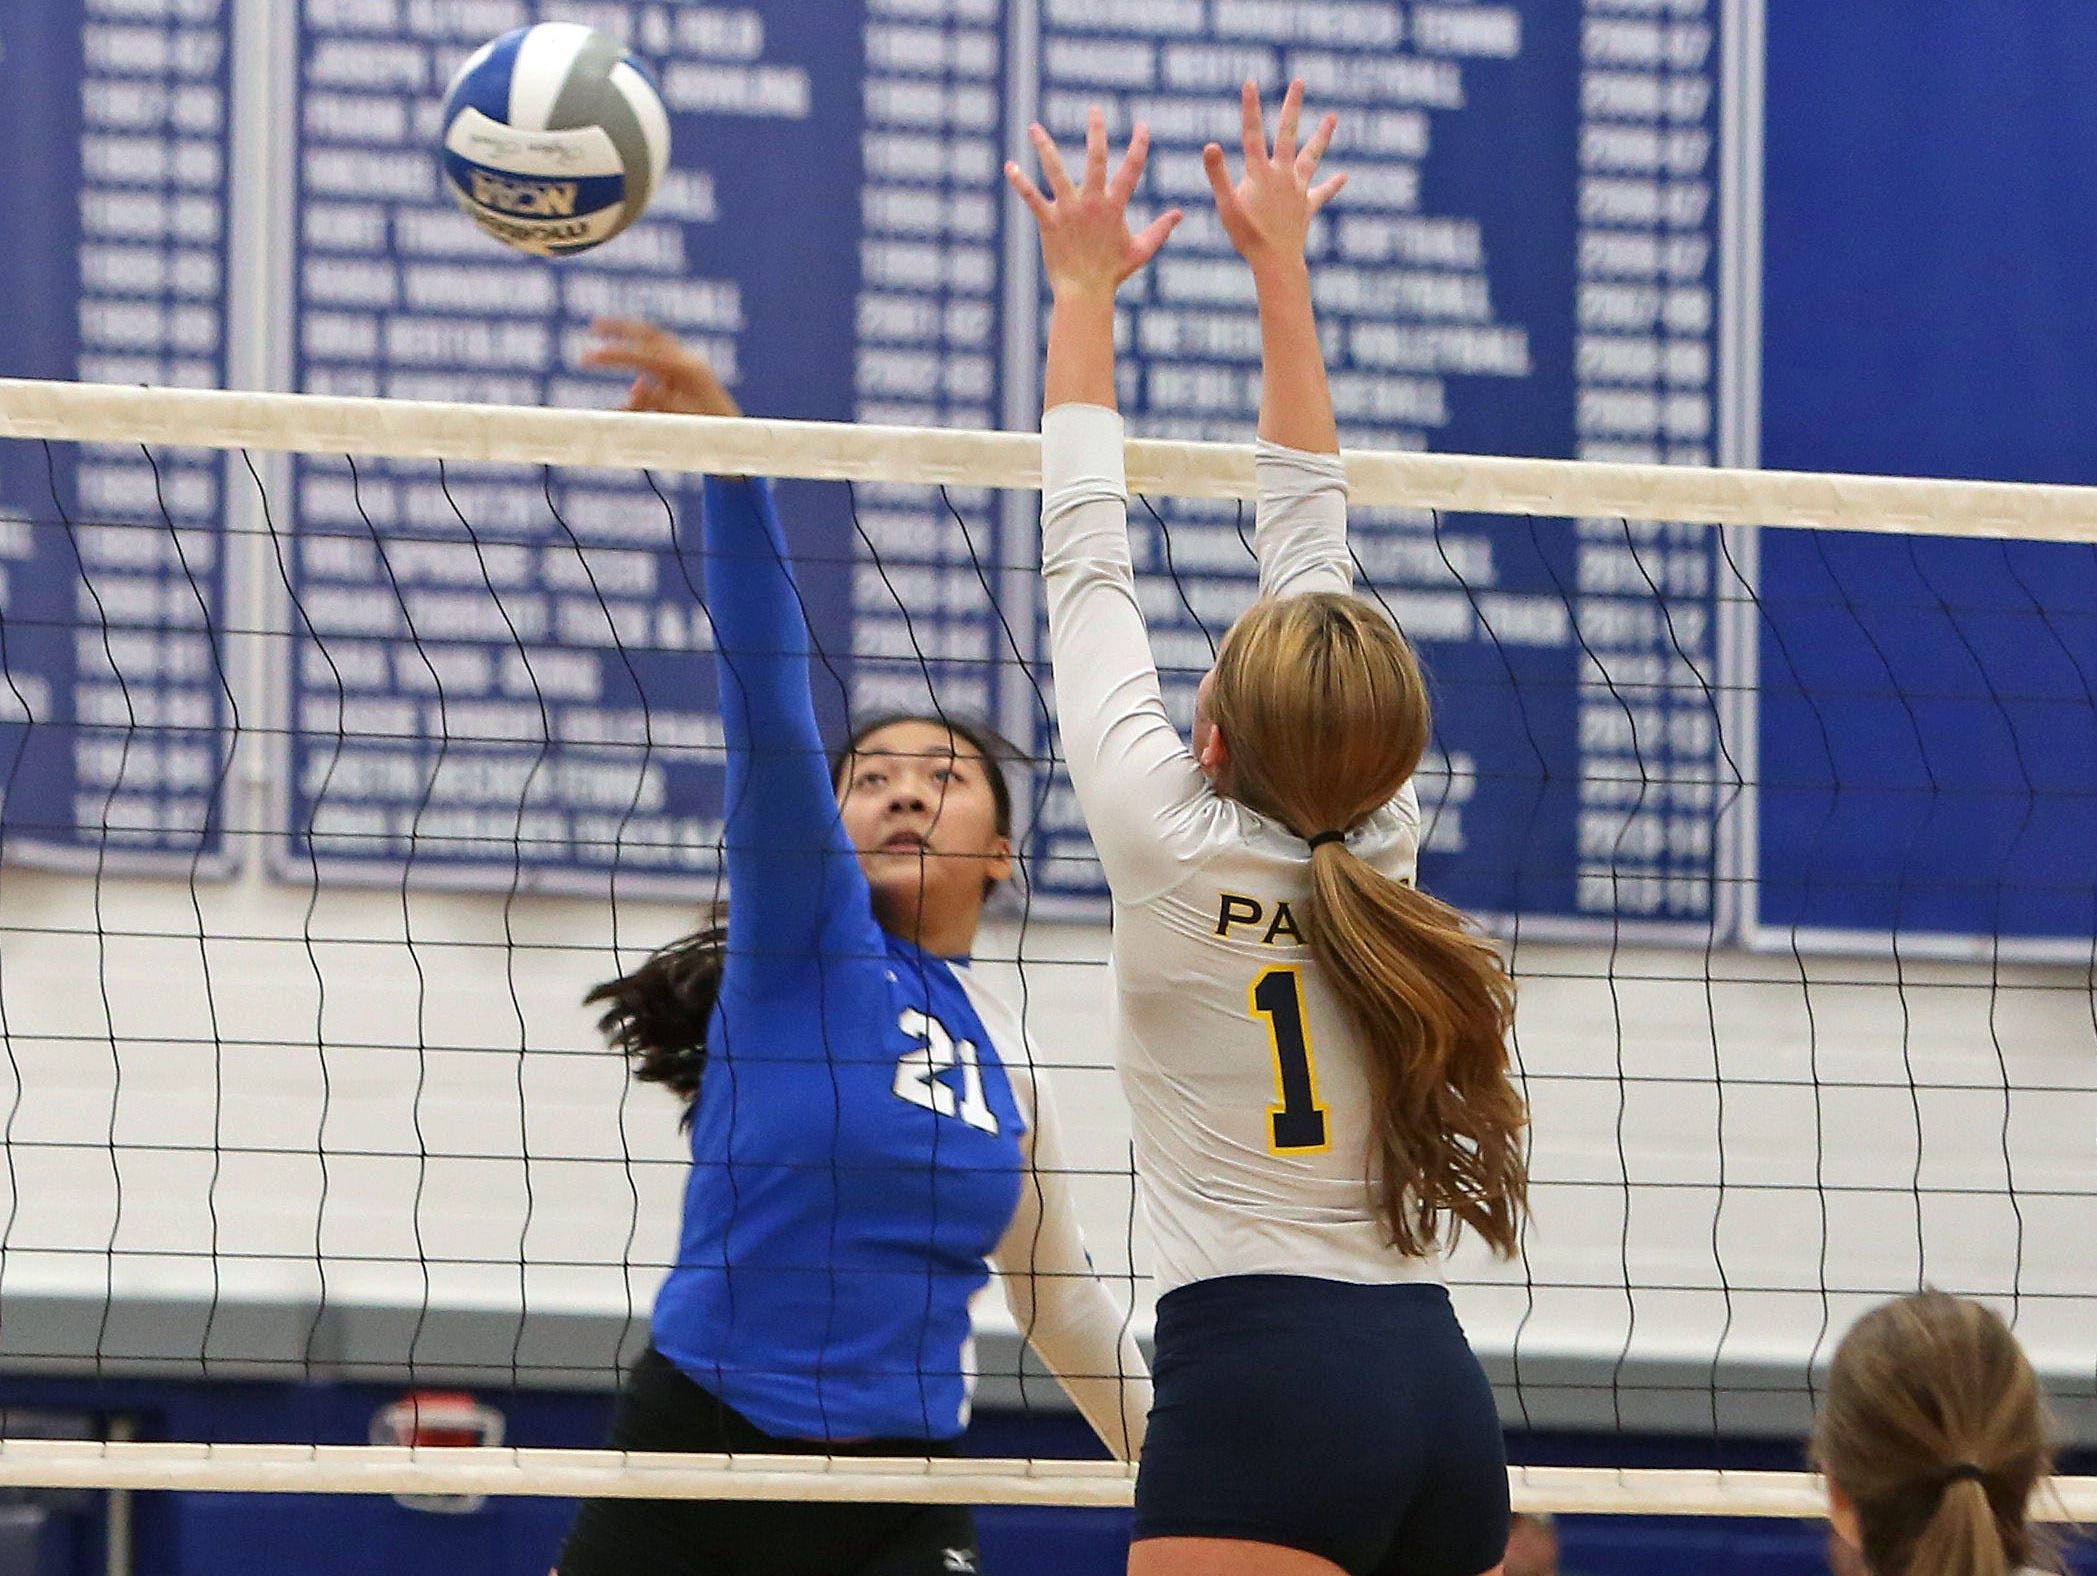 From left, Hen Hud's Kristin Loh (21) gets a shot by Walter Panas' Shauna O'Flaherty (11) during volleyball action at Hendrick Hudson High School in Montrose Oct. 8, 2015. Panas swept the host 3-0.